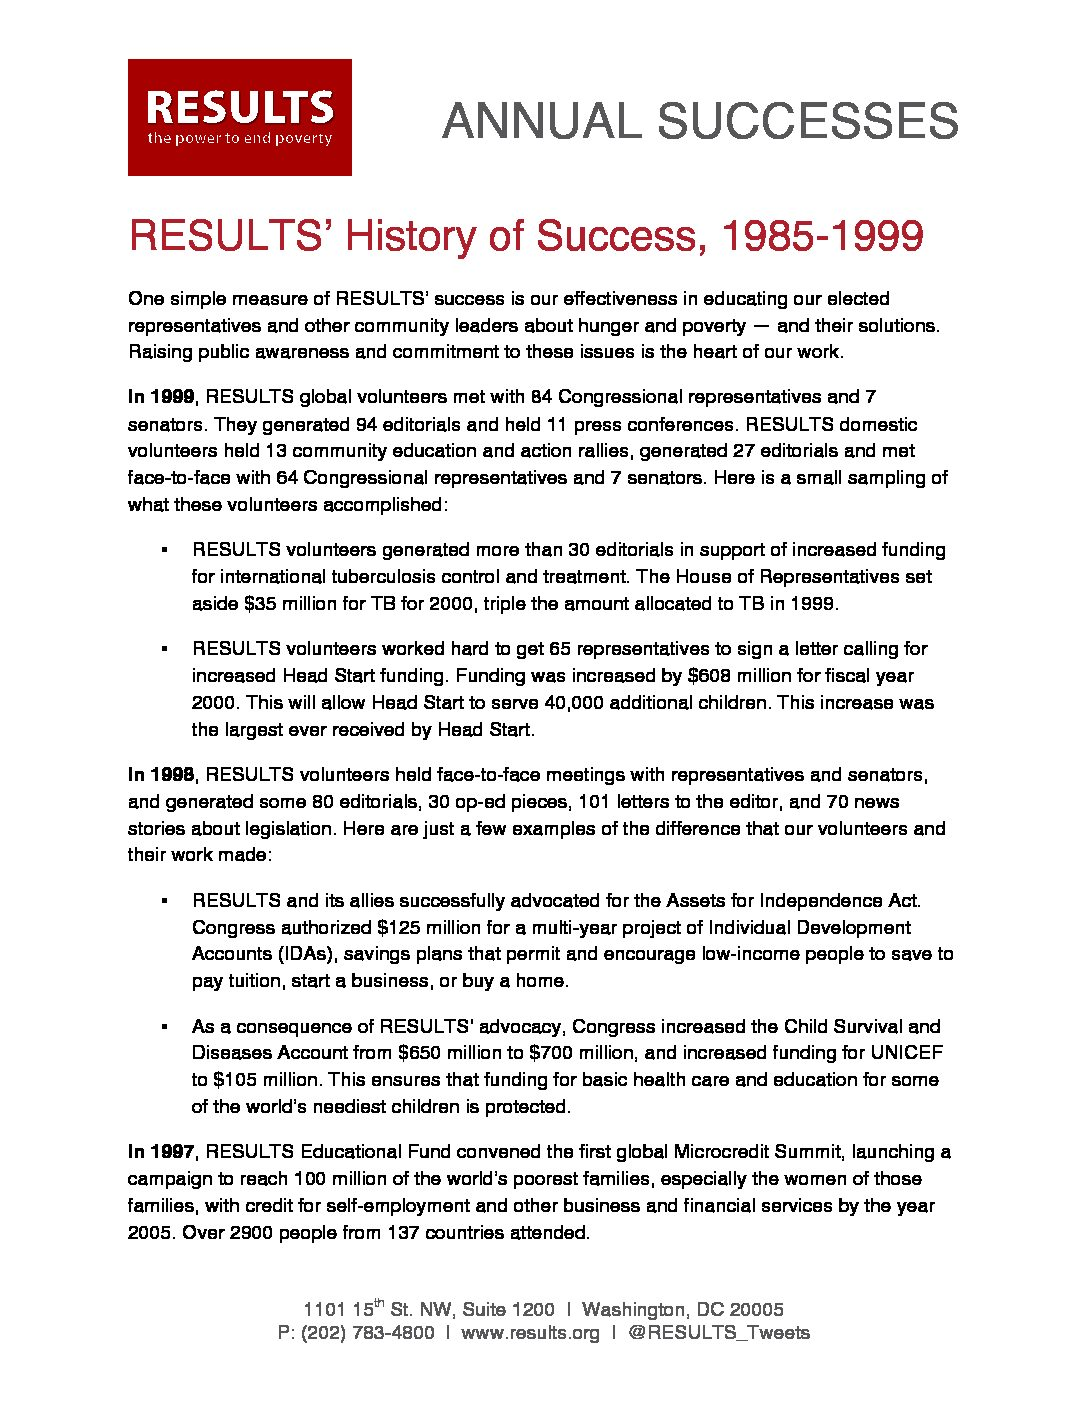 Annual Successes 1985-1999